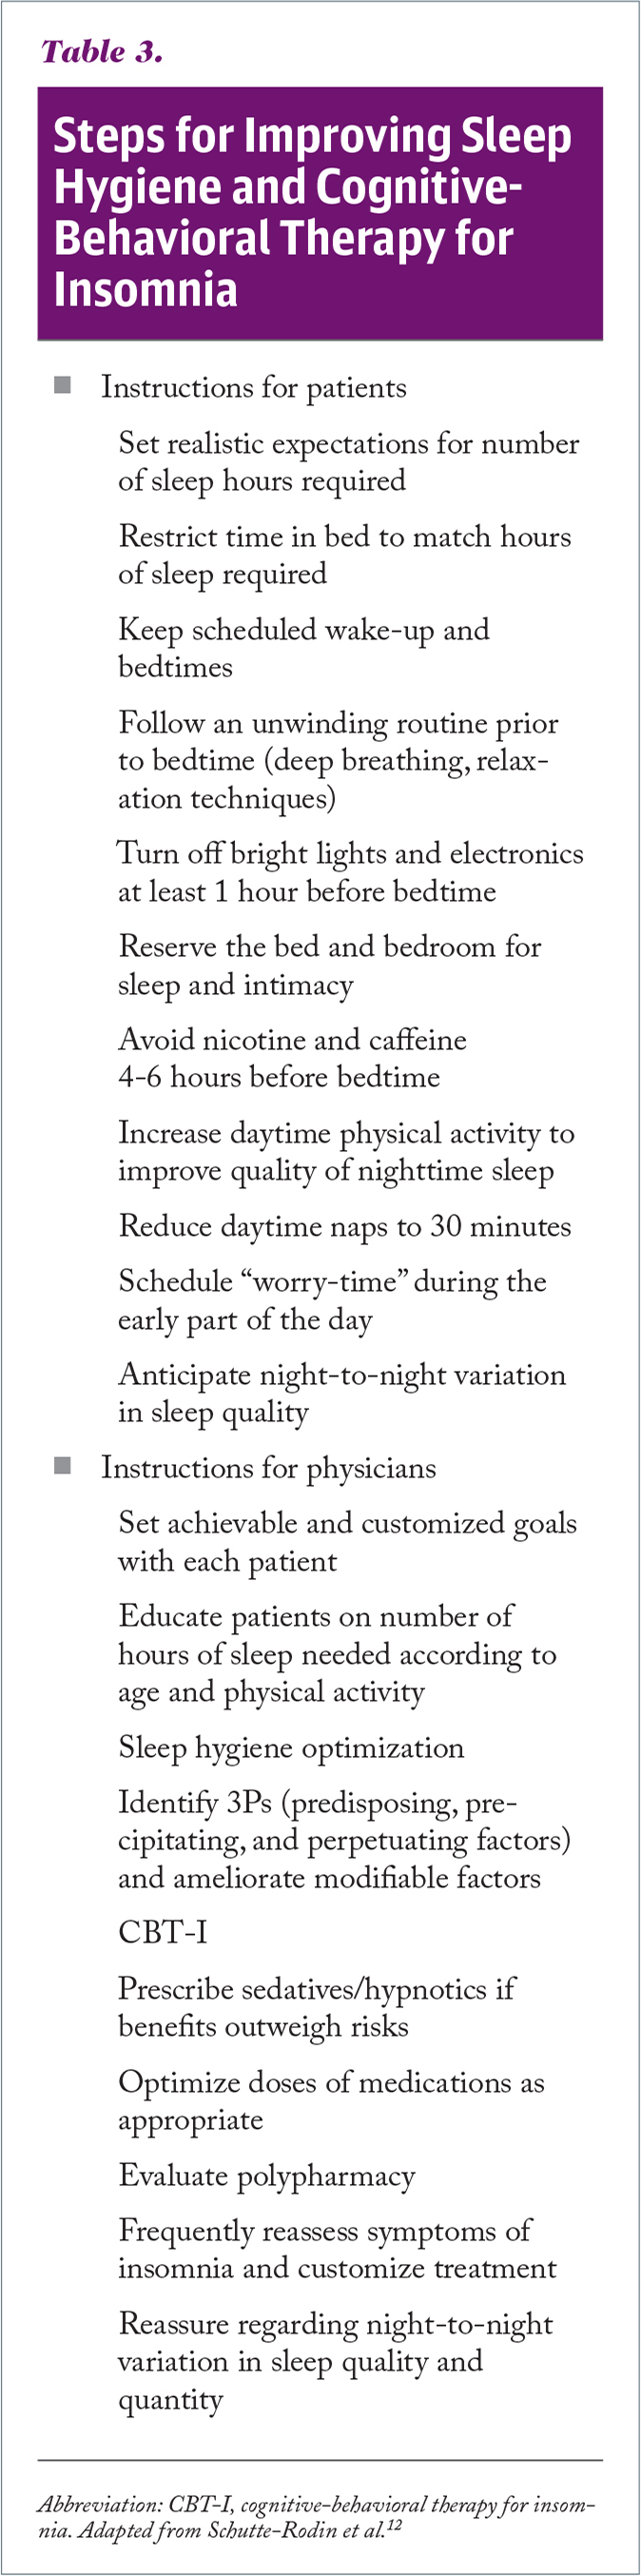 Steps for Improving Sleep Hygiene and Cognitive-Behavioral Therapy for Insomnia